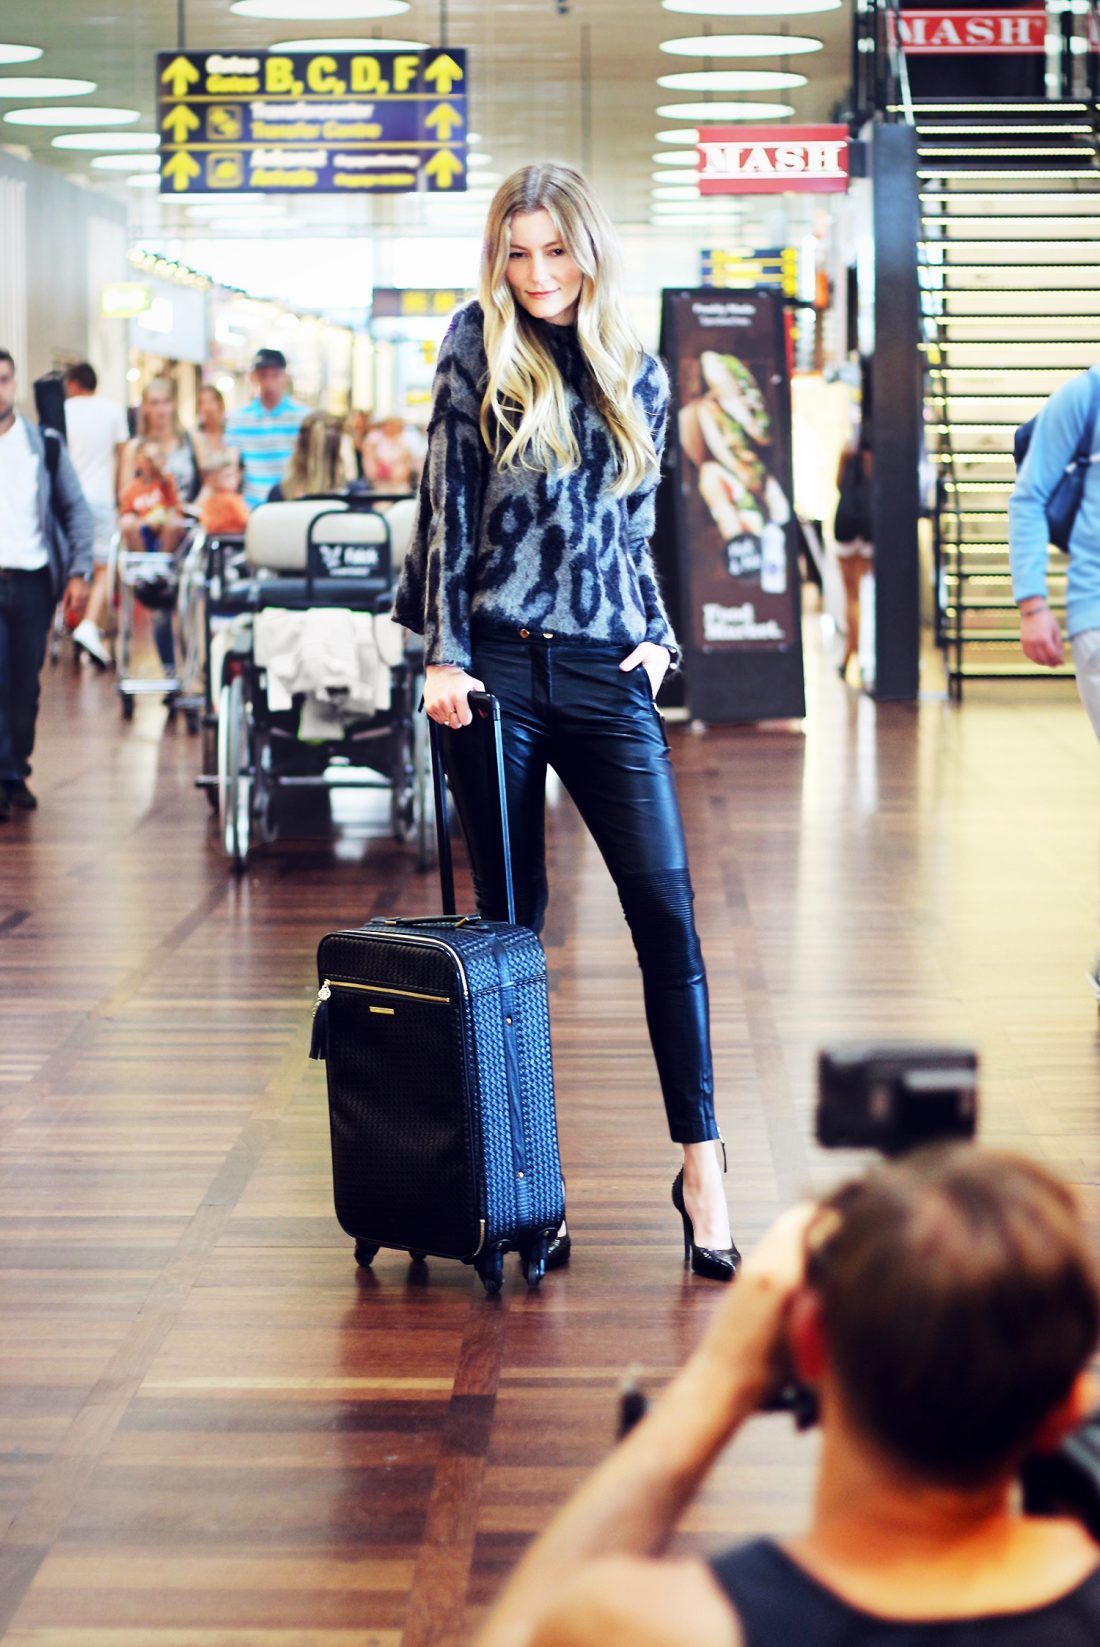 travel-style-outfit@2x1.jpg